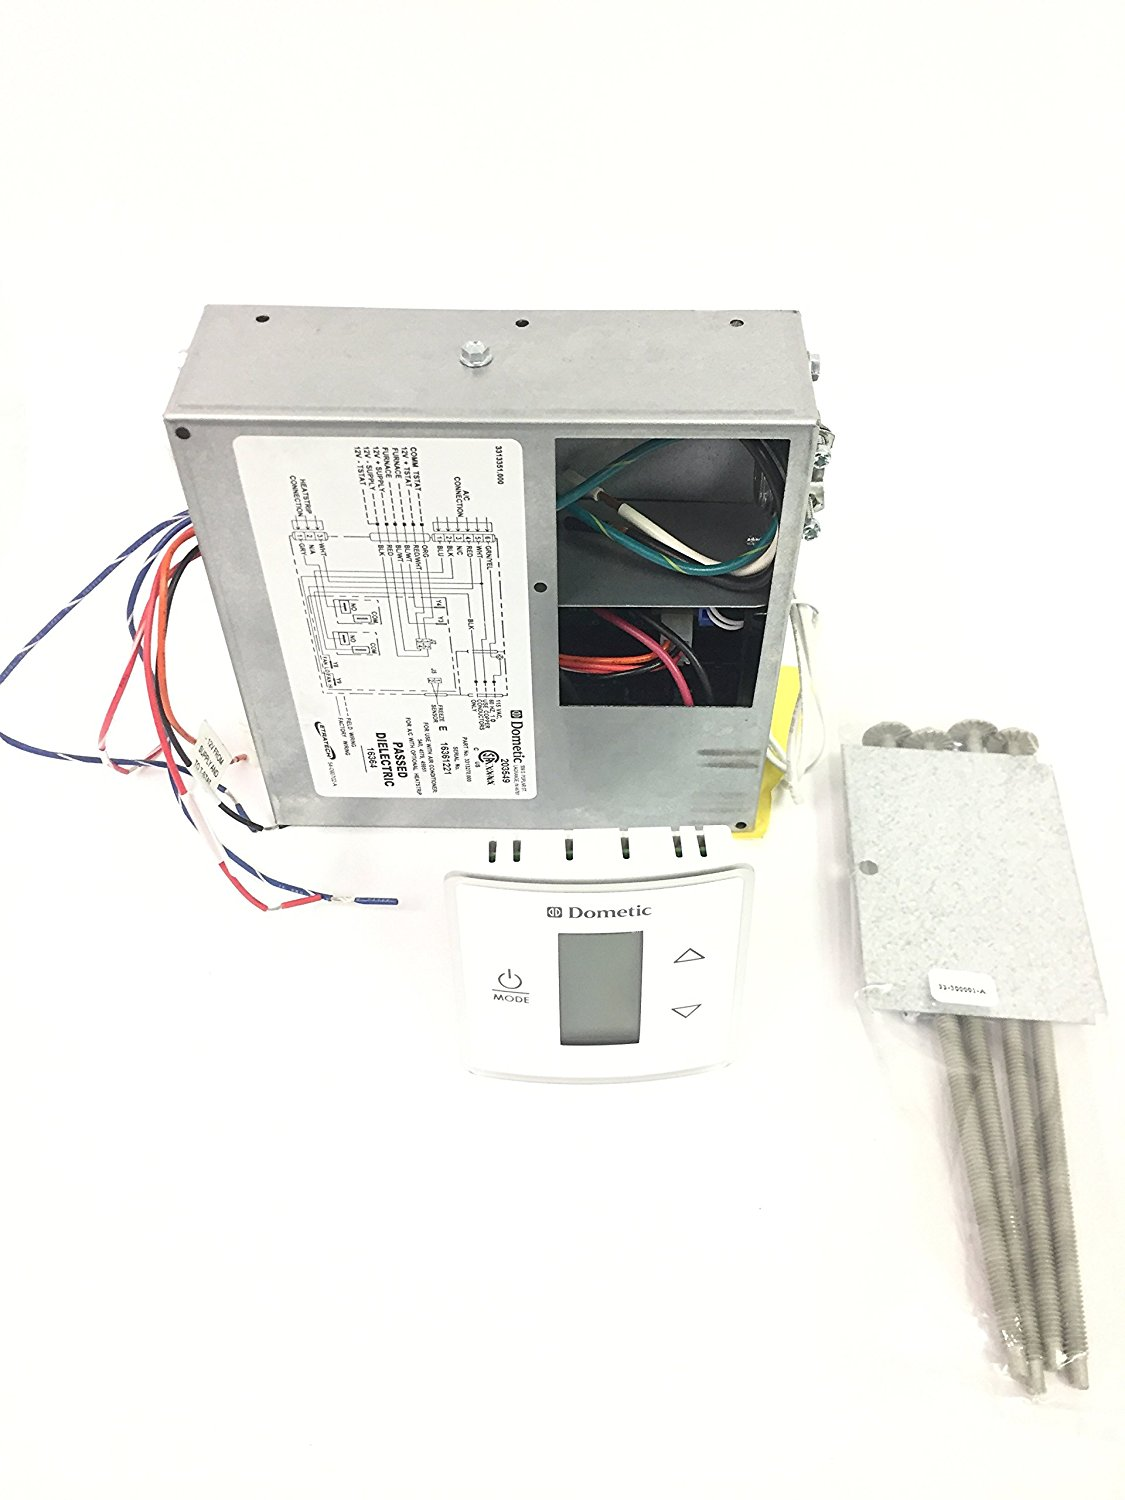 hight resolution of dometic 3316232 000 pw capacitive lcd touch thermostat kit replace 3313189 000 walmart com